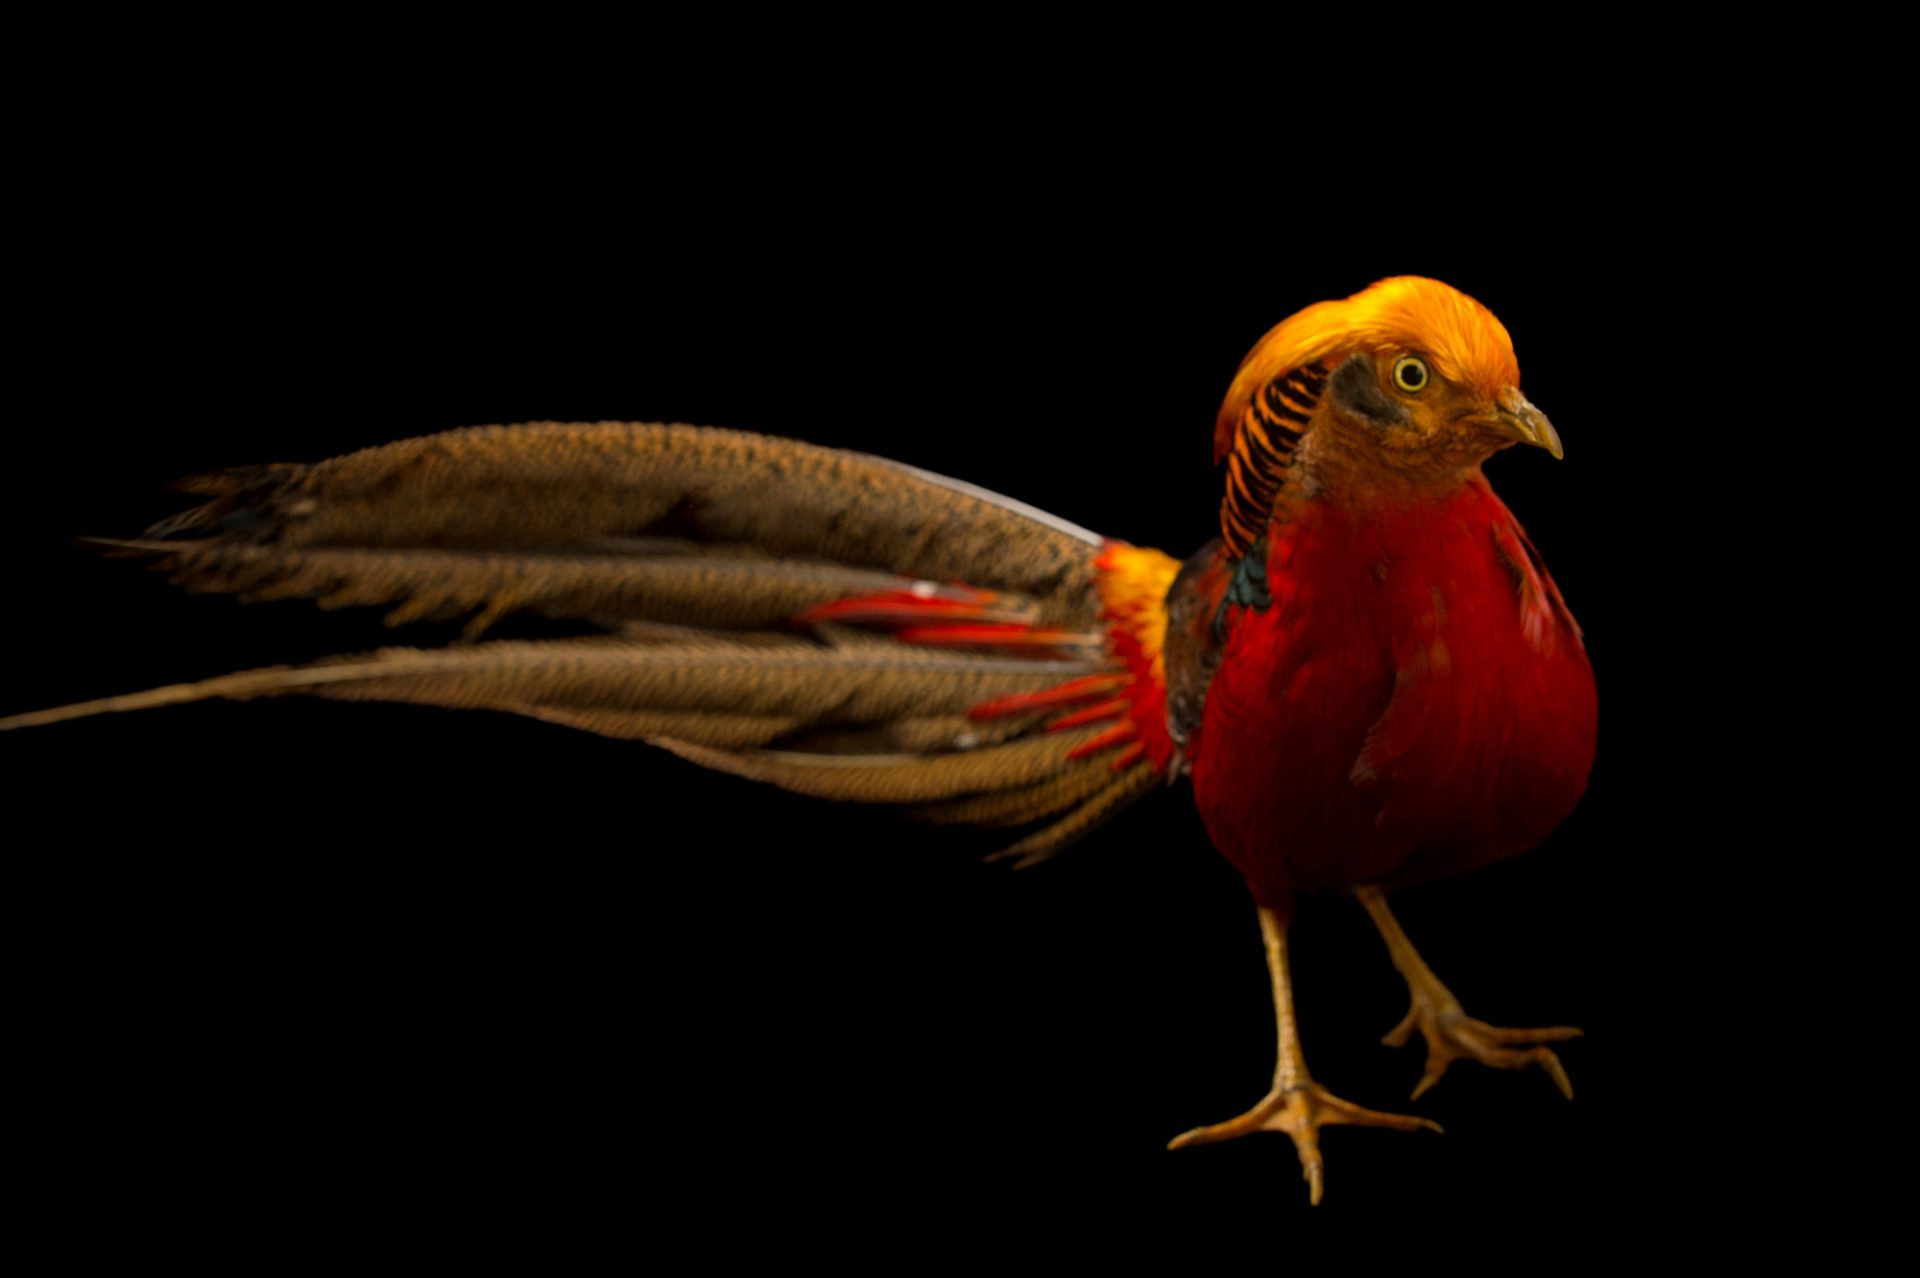 Photo: A male golden pheasant (Chrysolophus pictus) at Padmaja Naidu Himalayan Zoological Park.